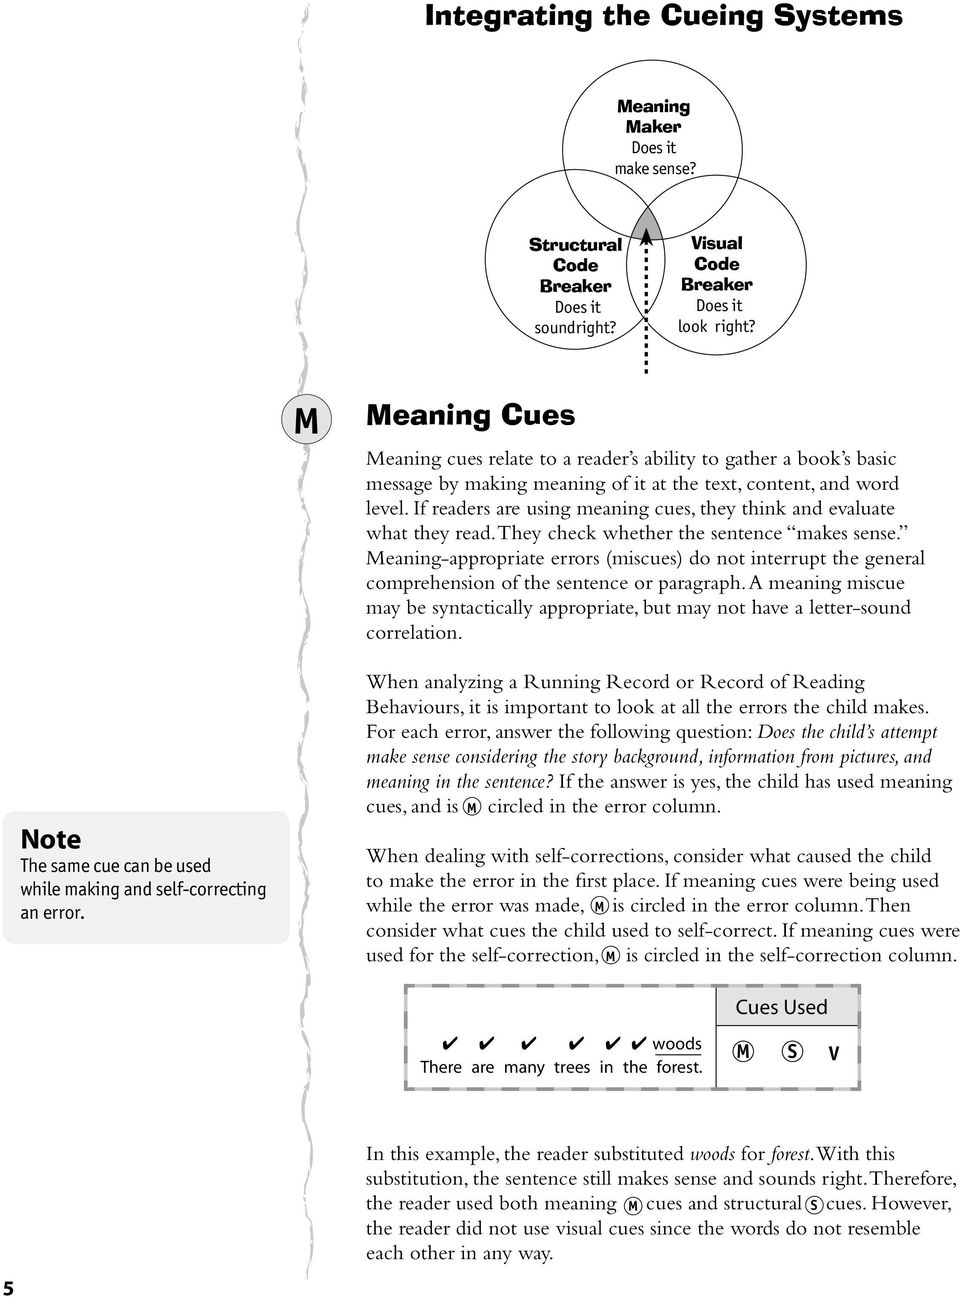 If readers are using meaning cues, they think and evaluate what they read. They check whether the sentence makes sense.